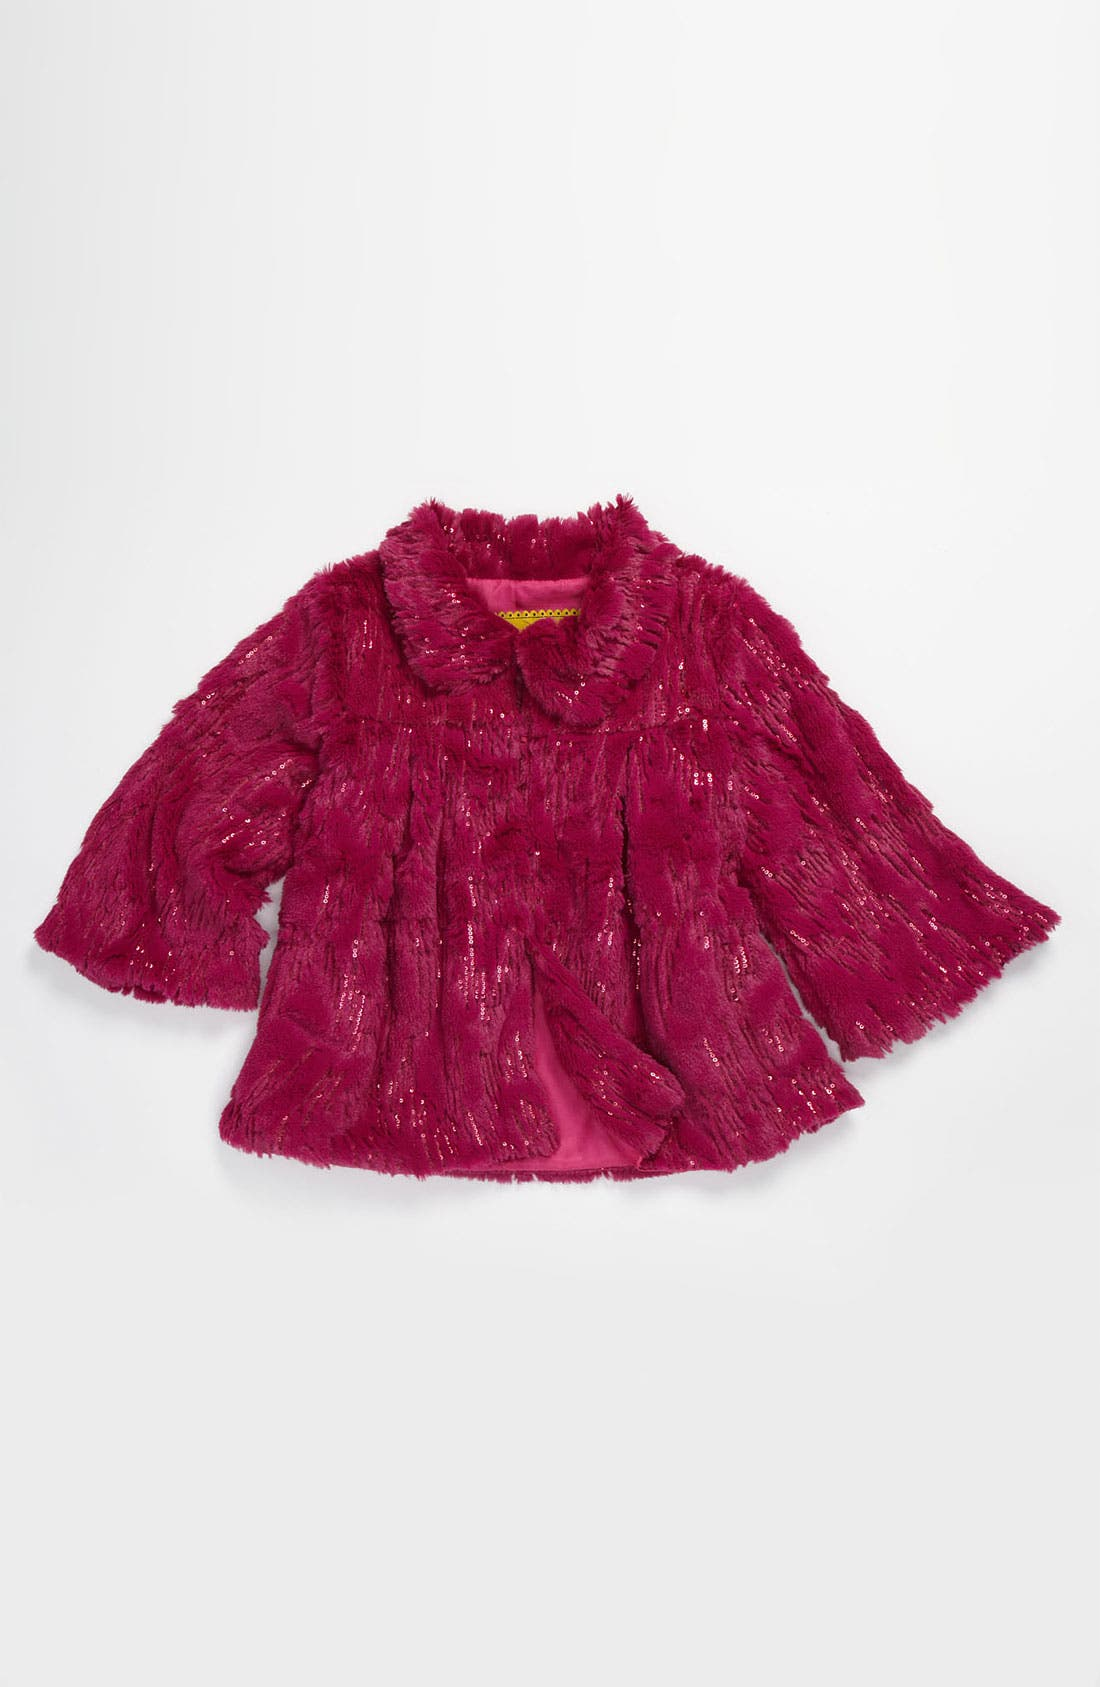 Main Image - Peace of Cake 'Soft Touch' Sequin Bolero (Little Girls & Big Girls)